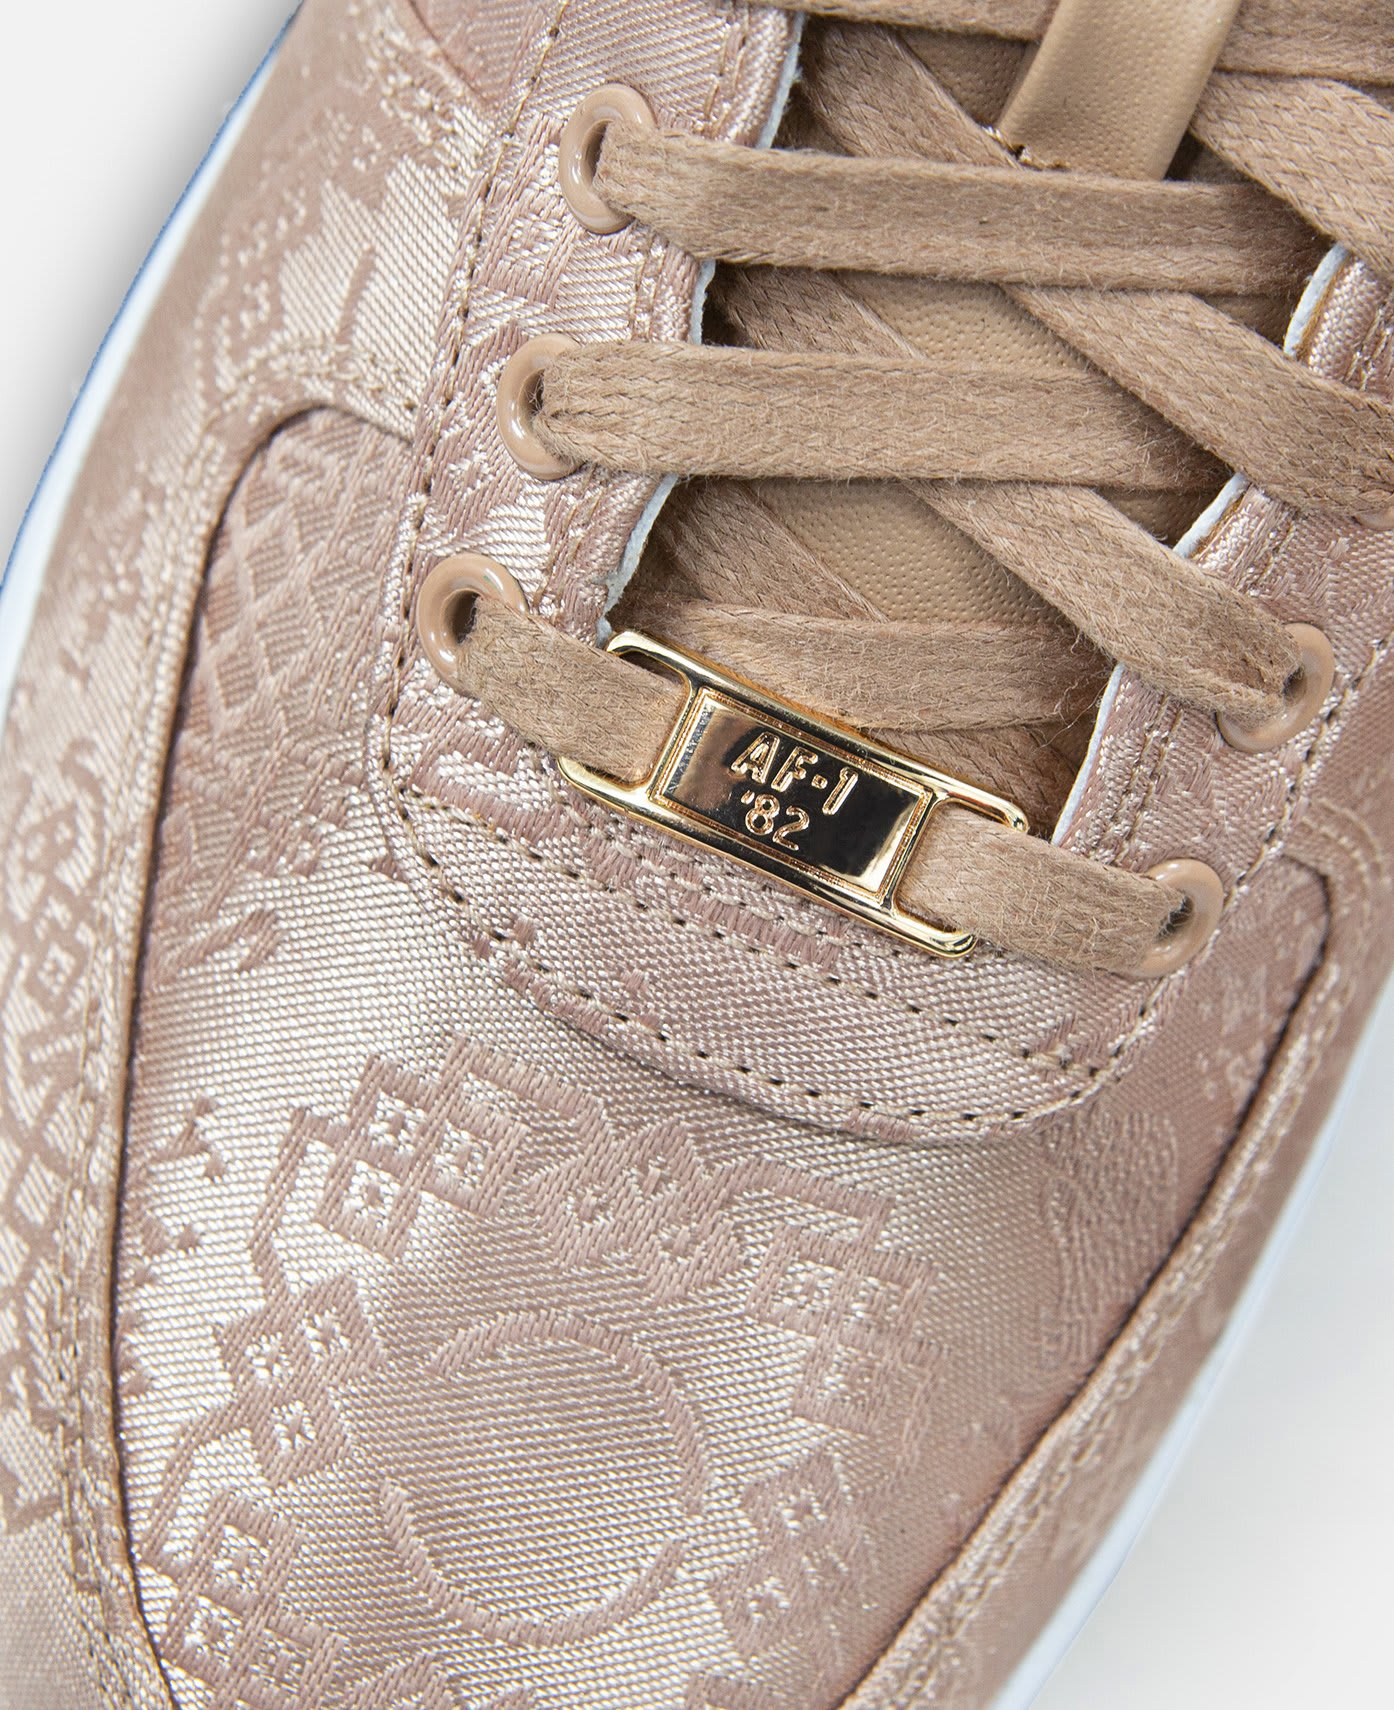 clot-nike-air-force-1-low-rose-gold-toe-box